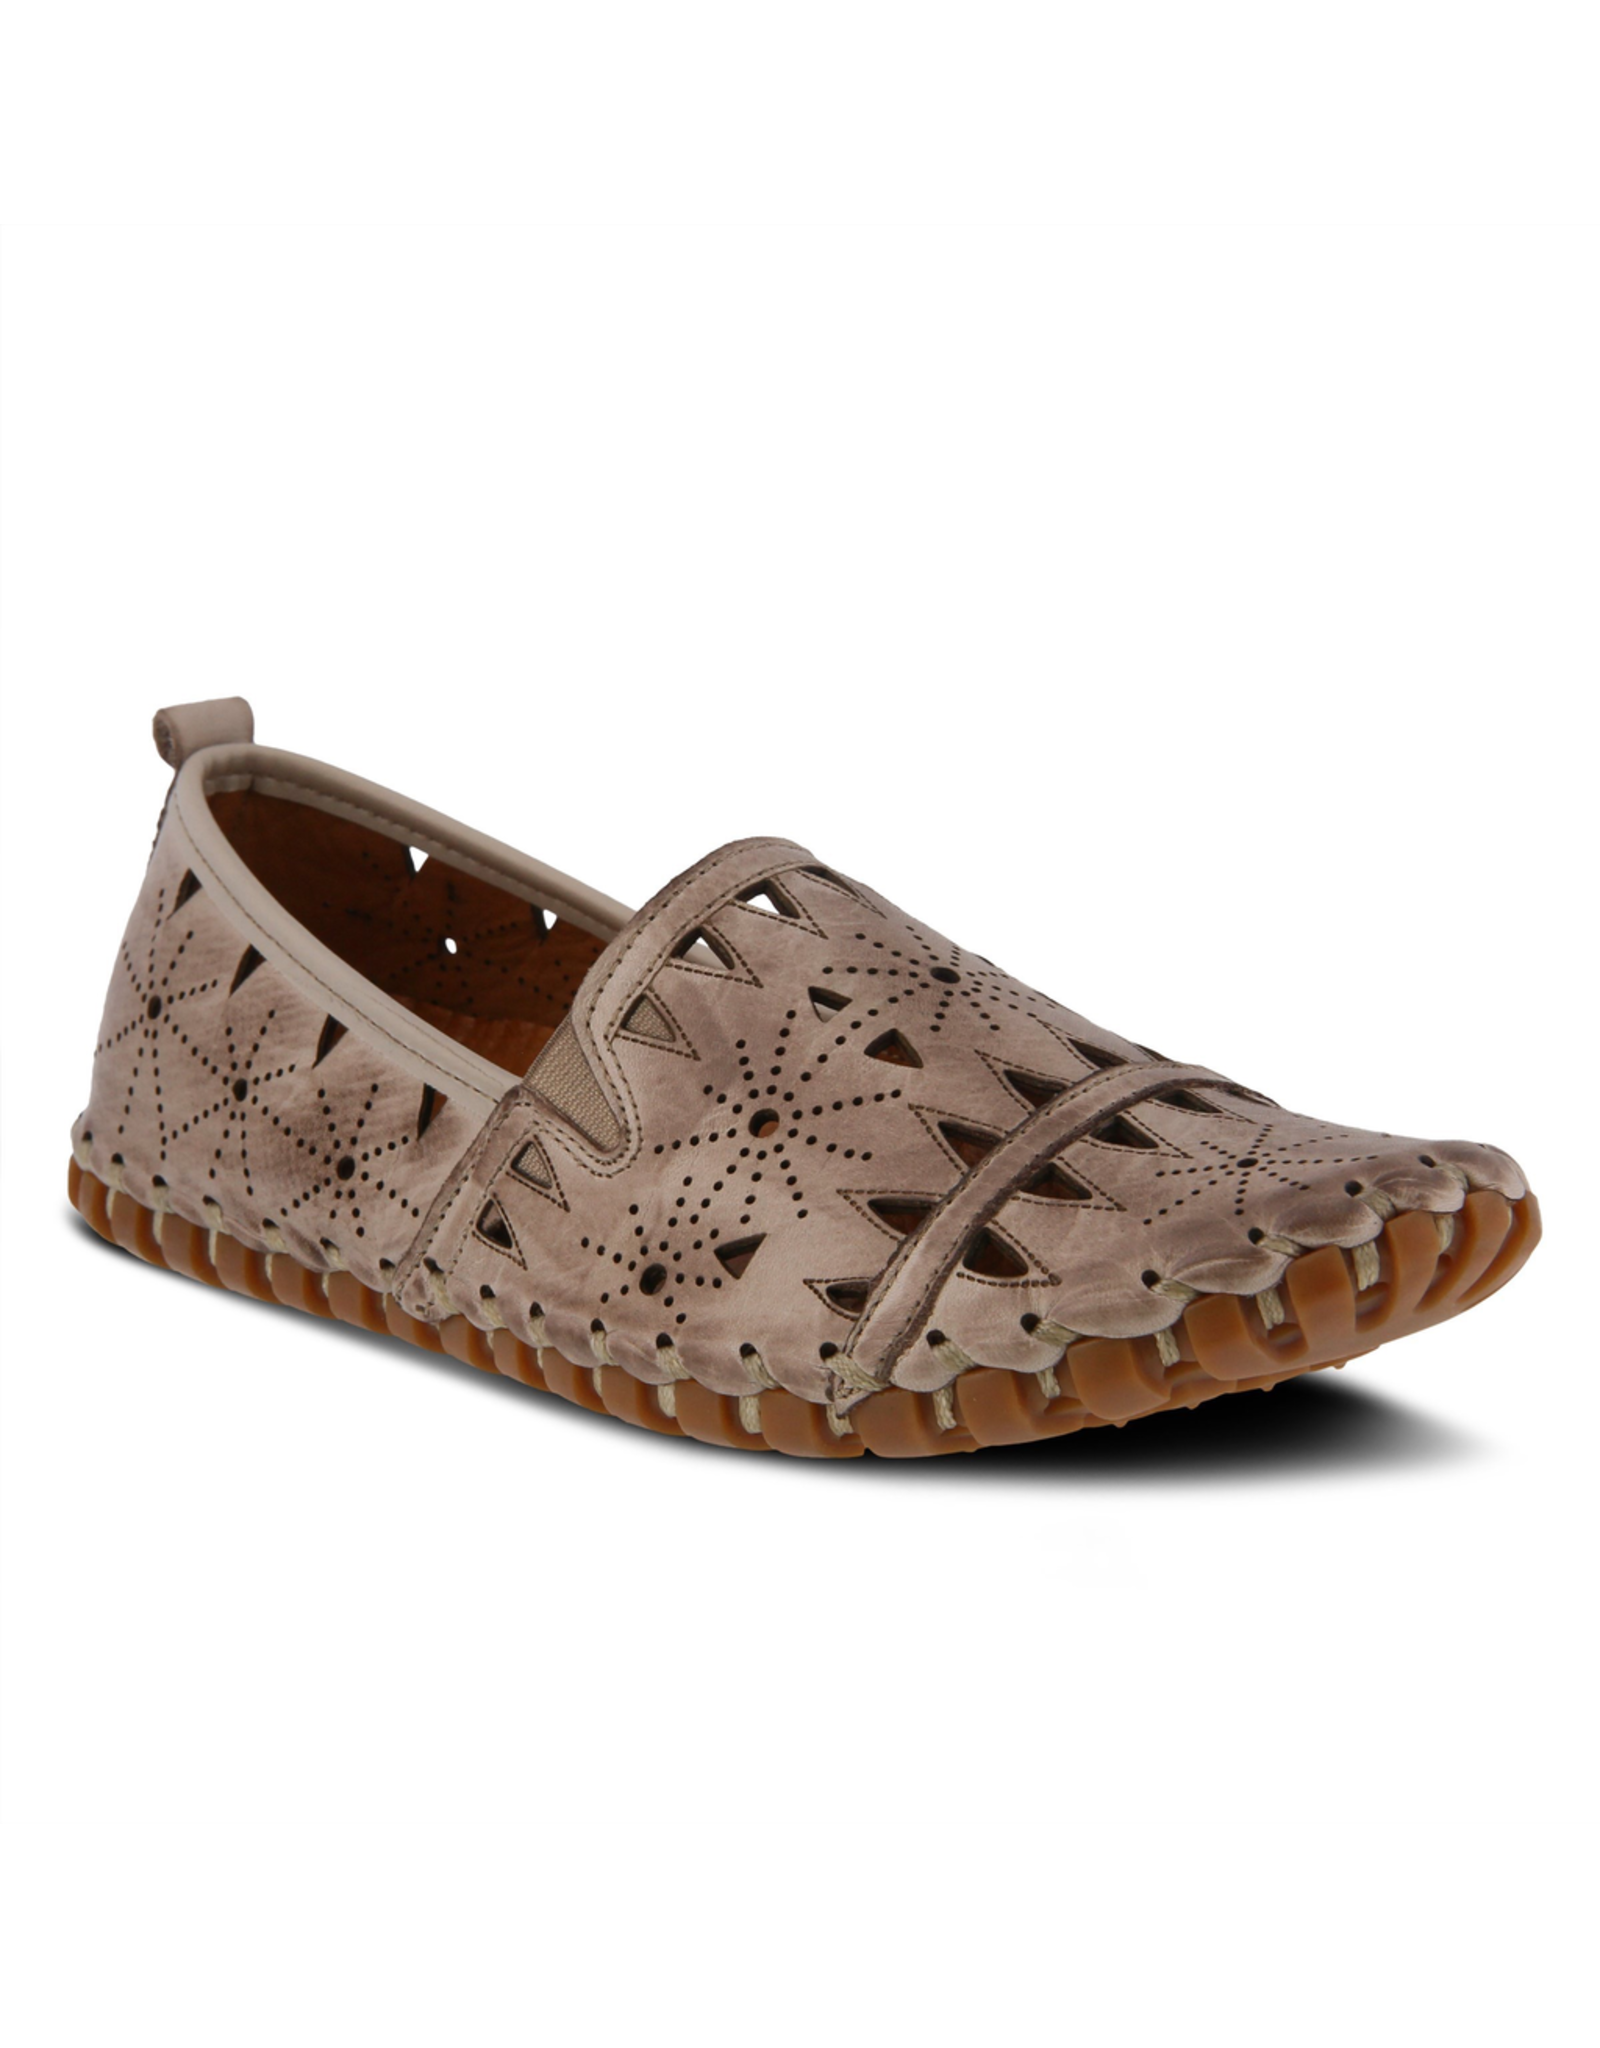 Fusaro Leather Slip On Shoe